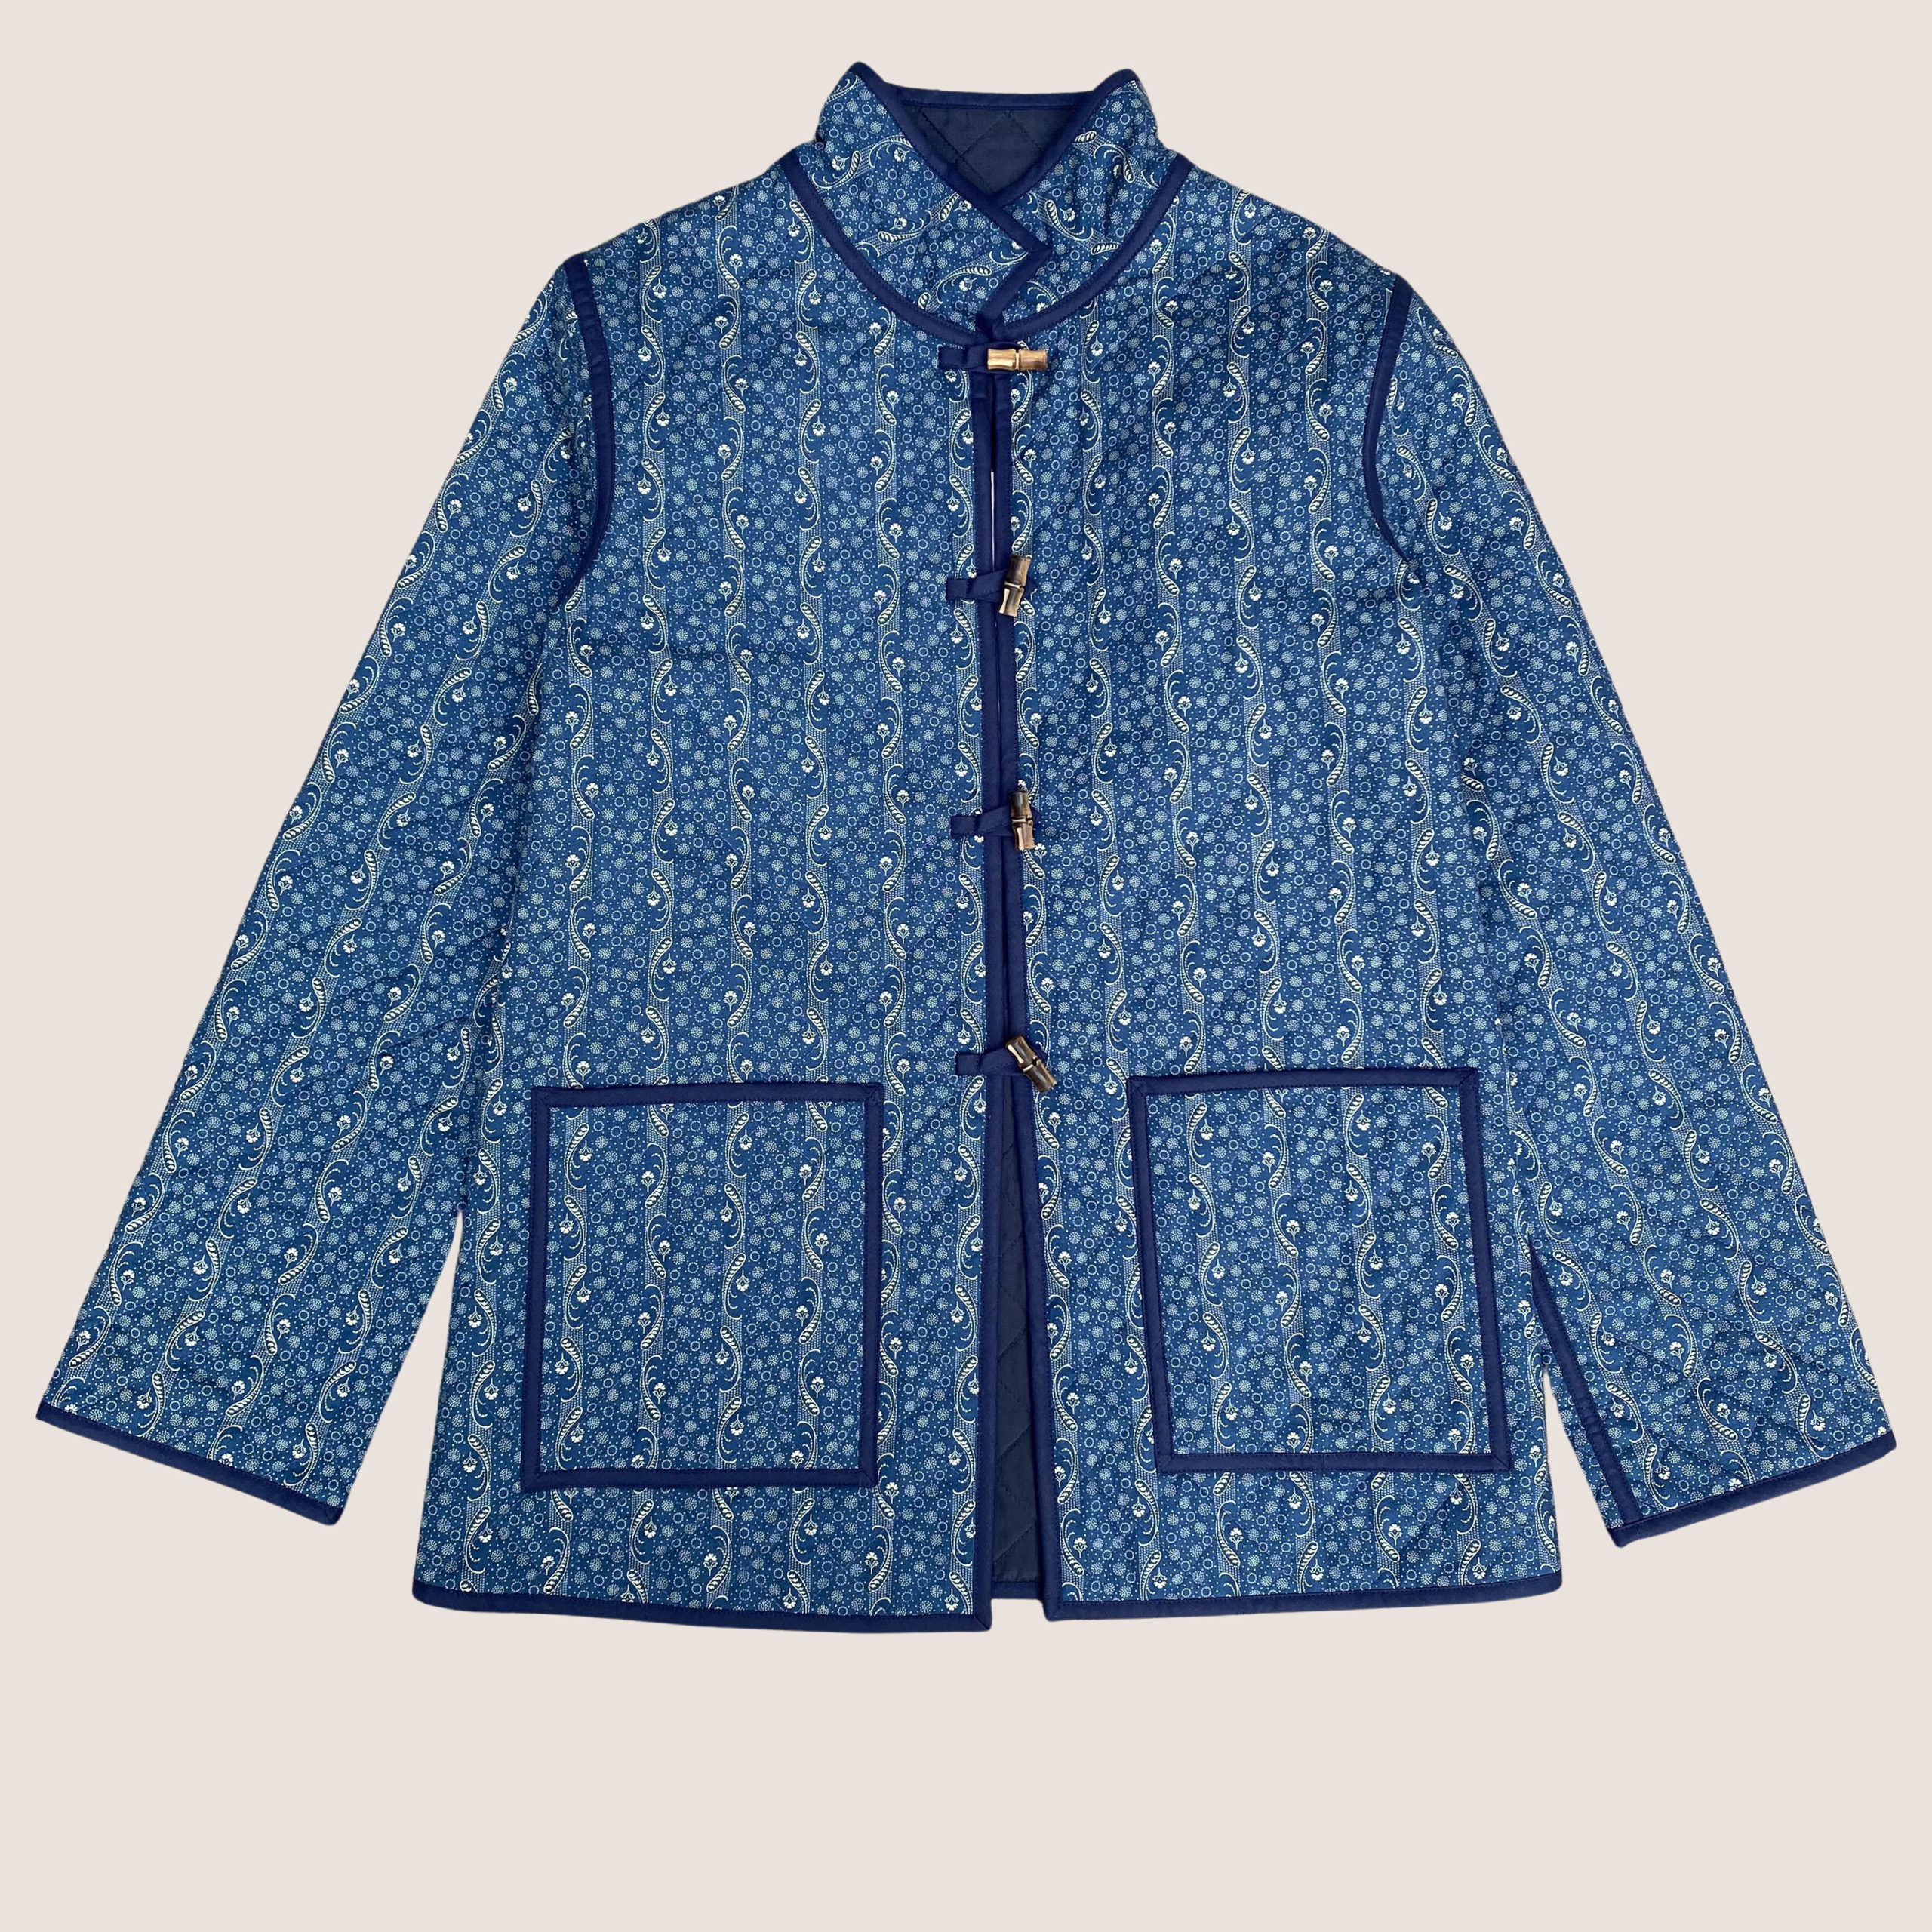 The Replica Quilt Jacket